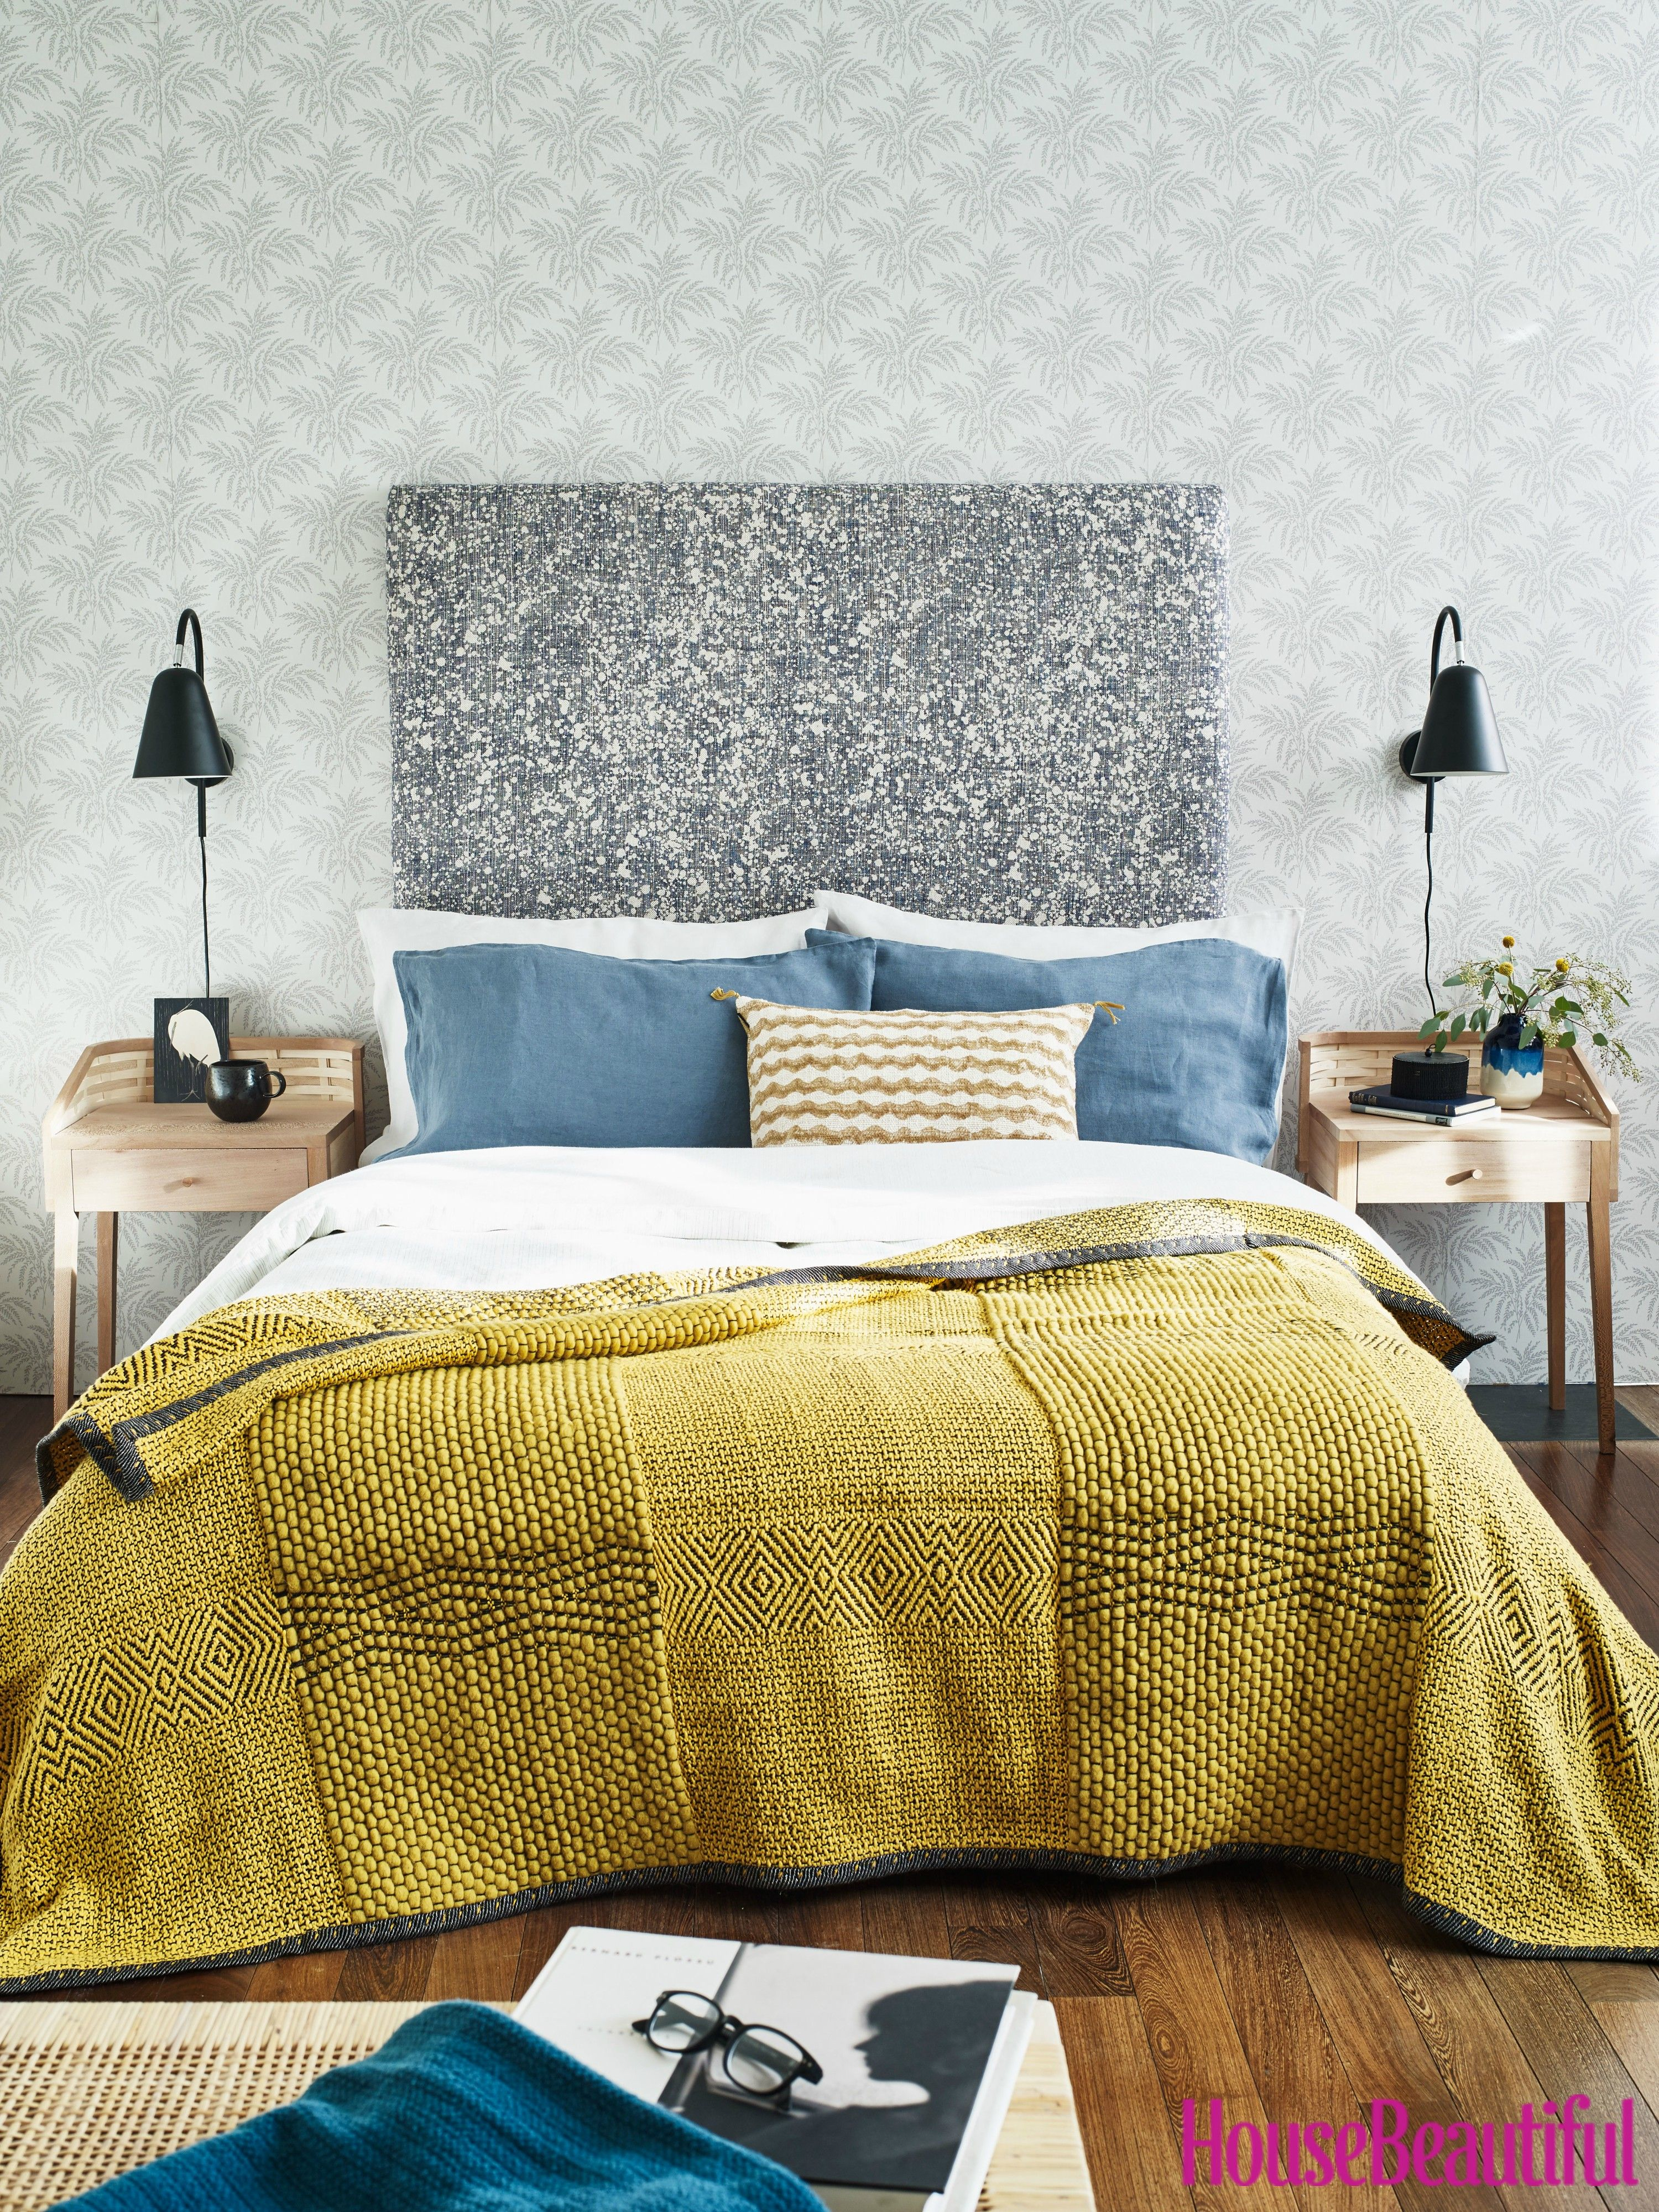 8 modern oriental decorating ideas for your home | Oriental, Wall ...